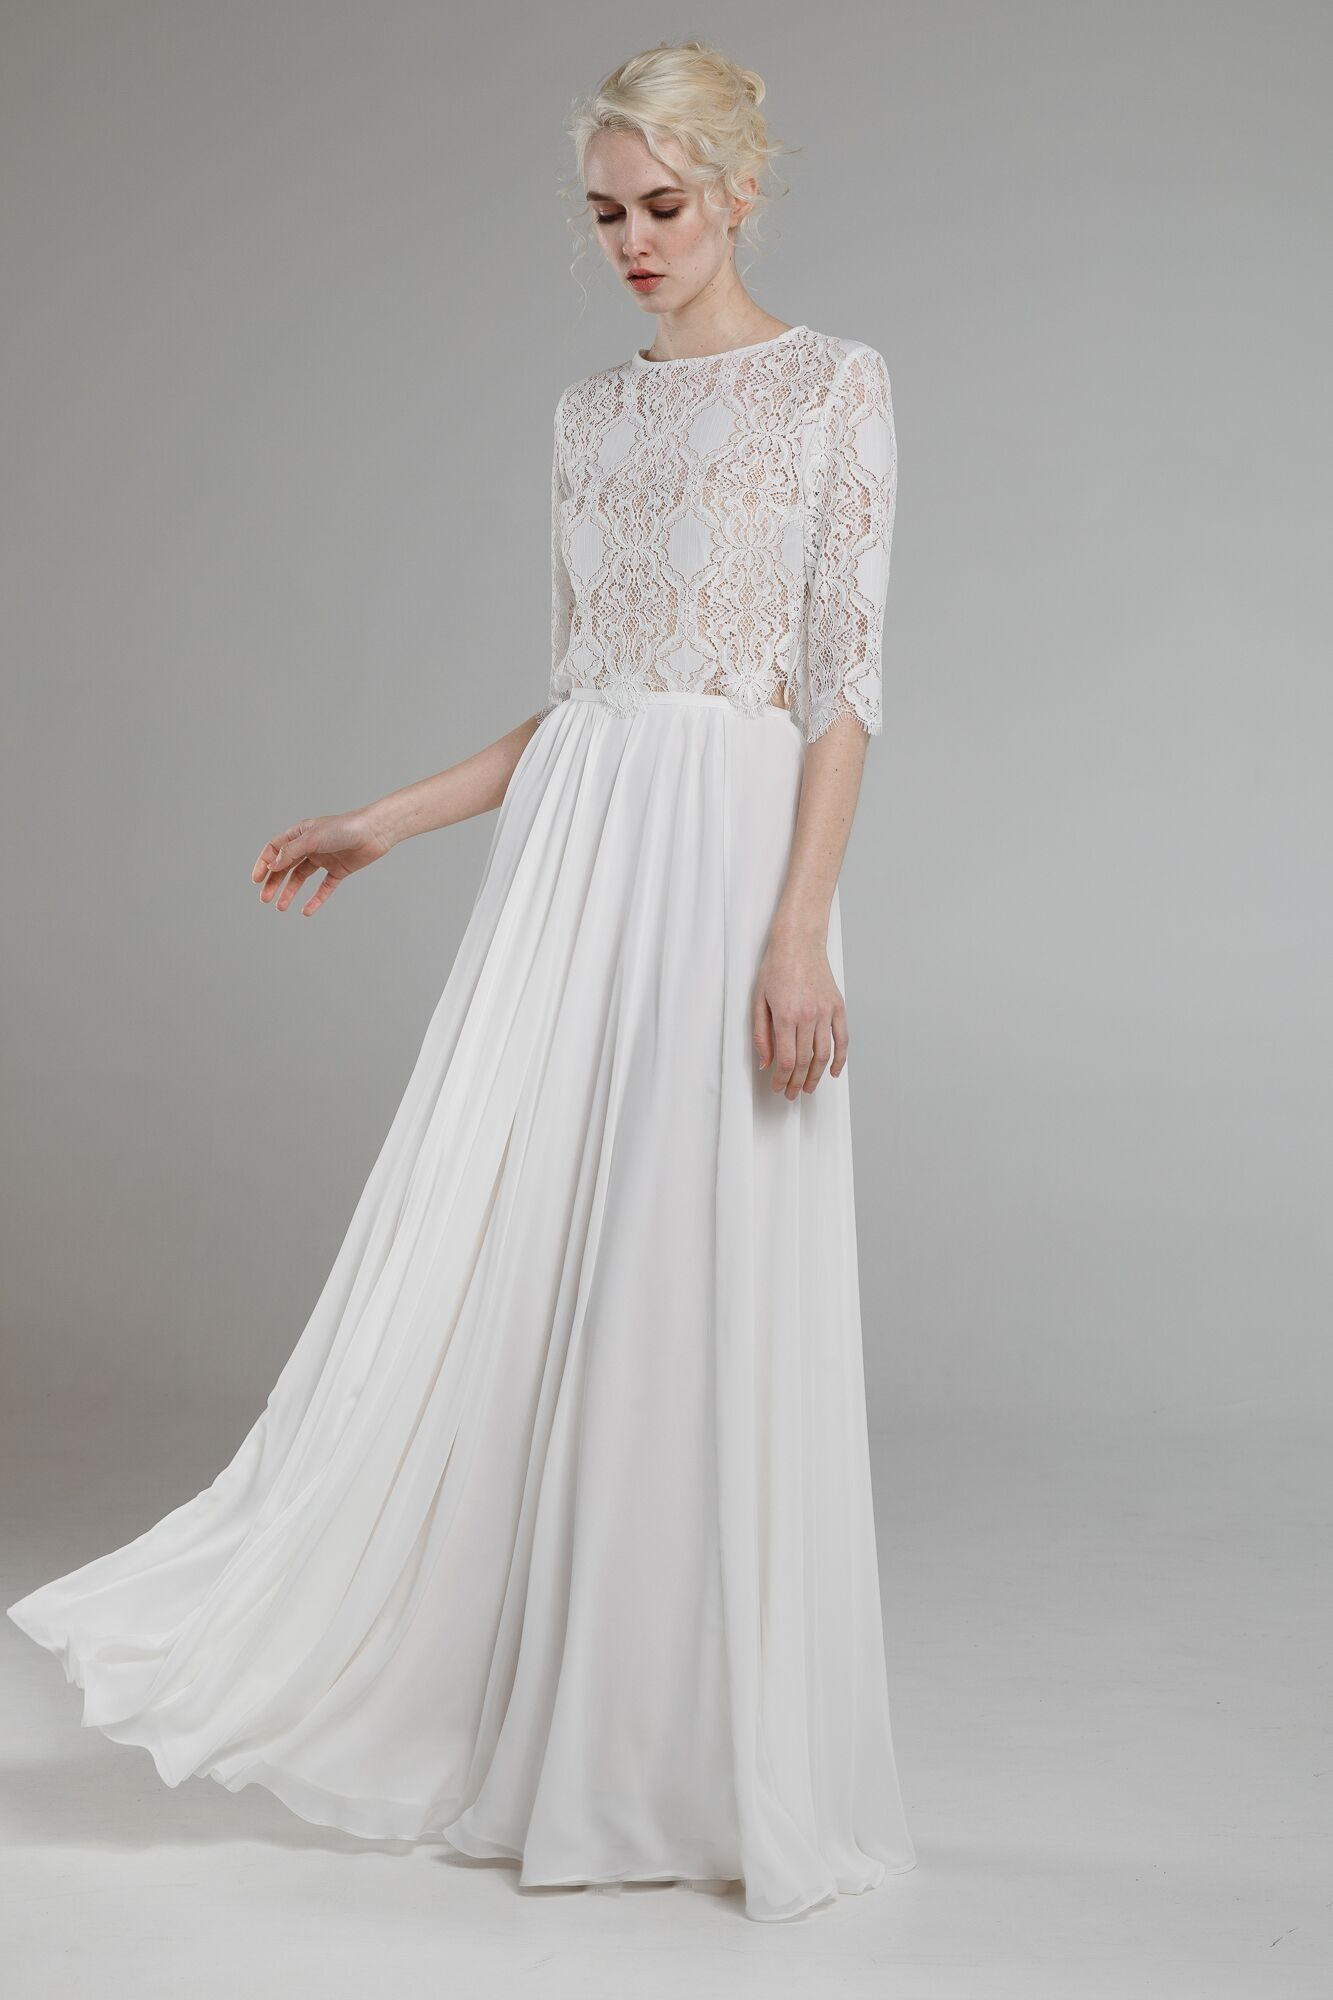 For the ultra chic, cool bride. This modern minimalist two